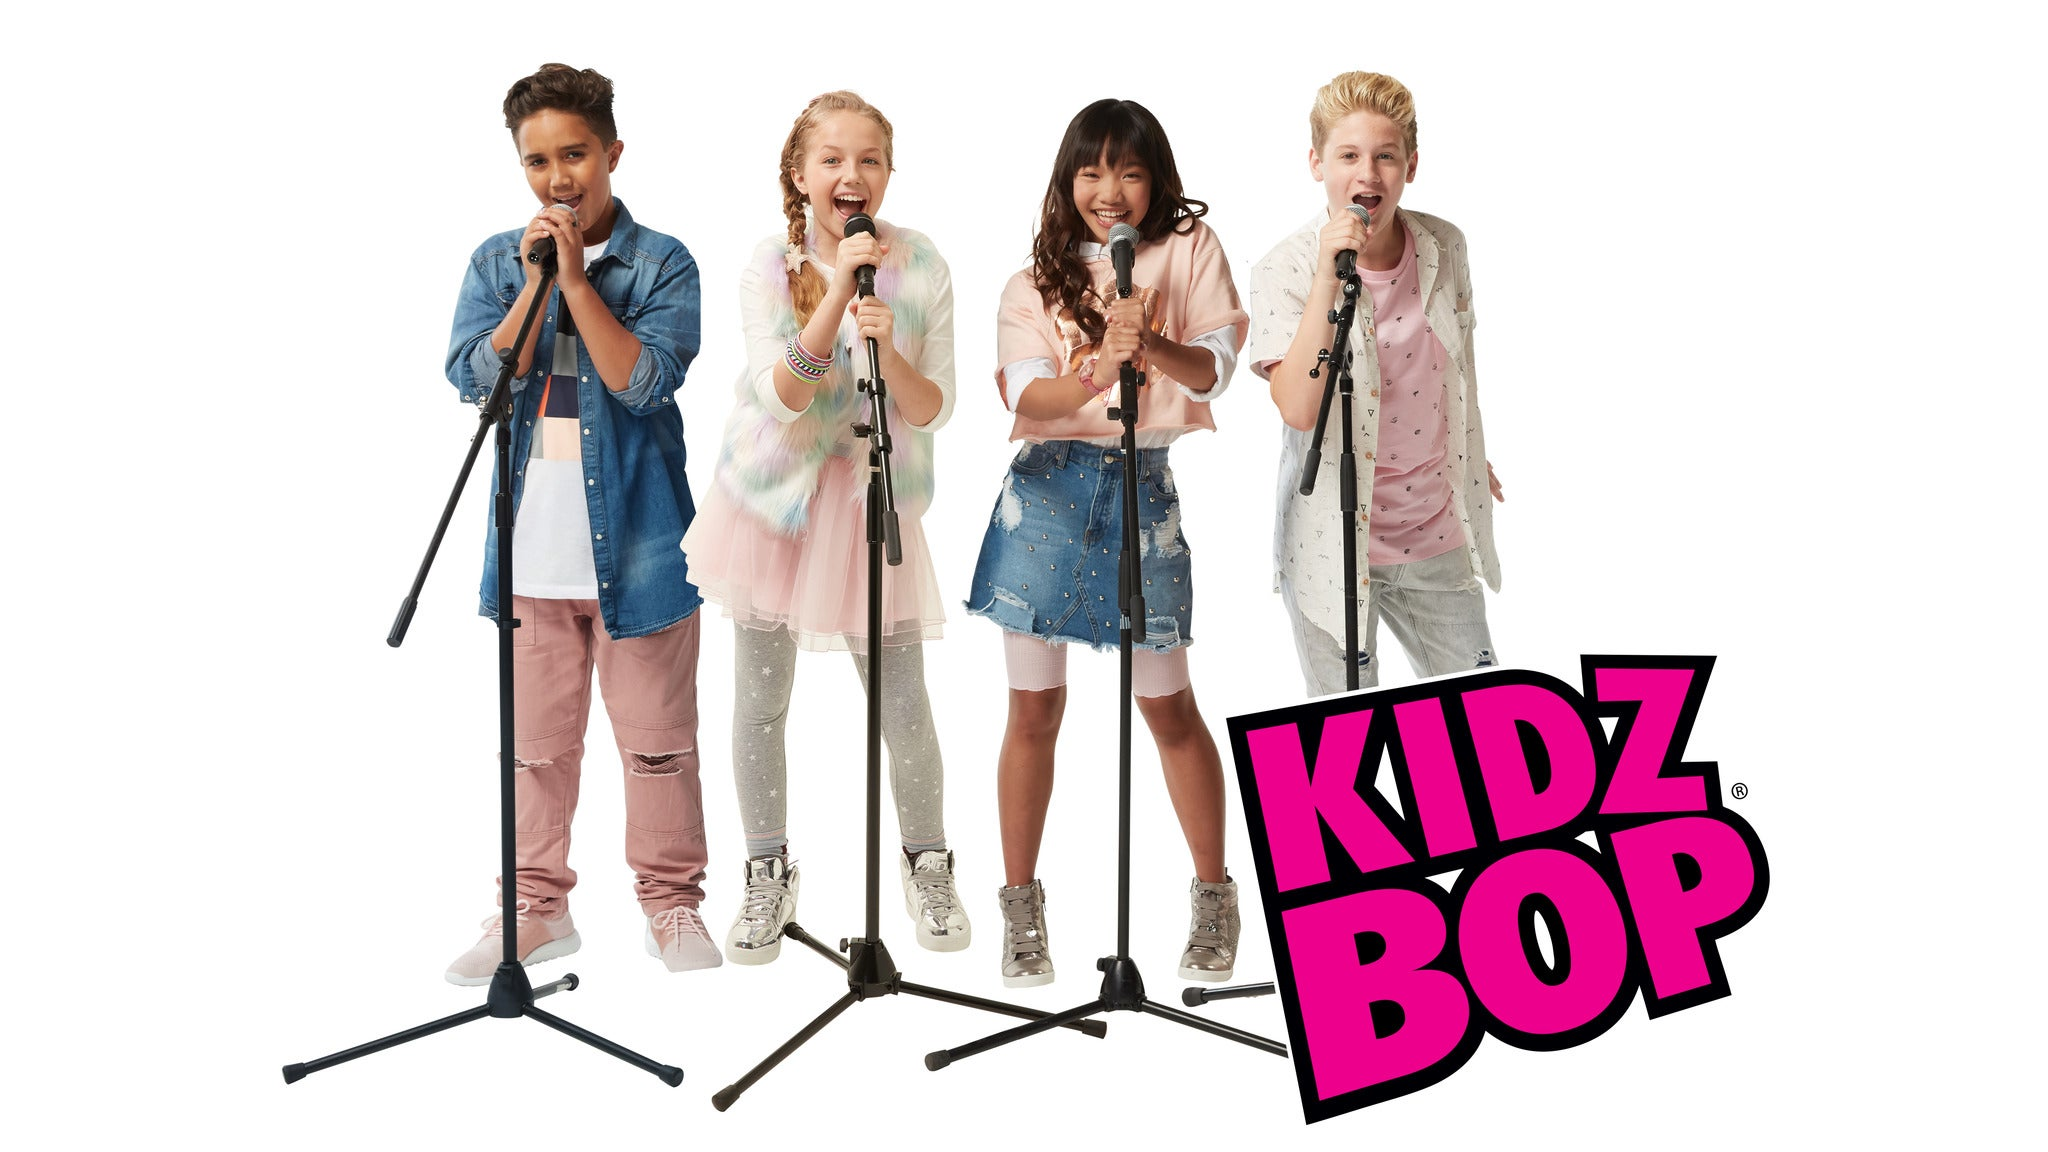 Kidz Bop - Upgrade Meet & Greet Packages at Concord Pavilion